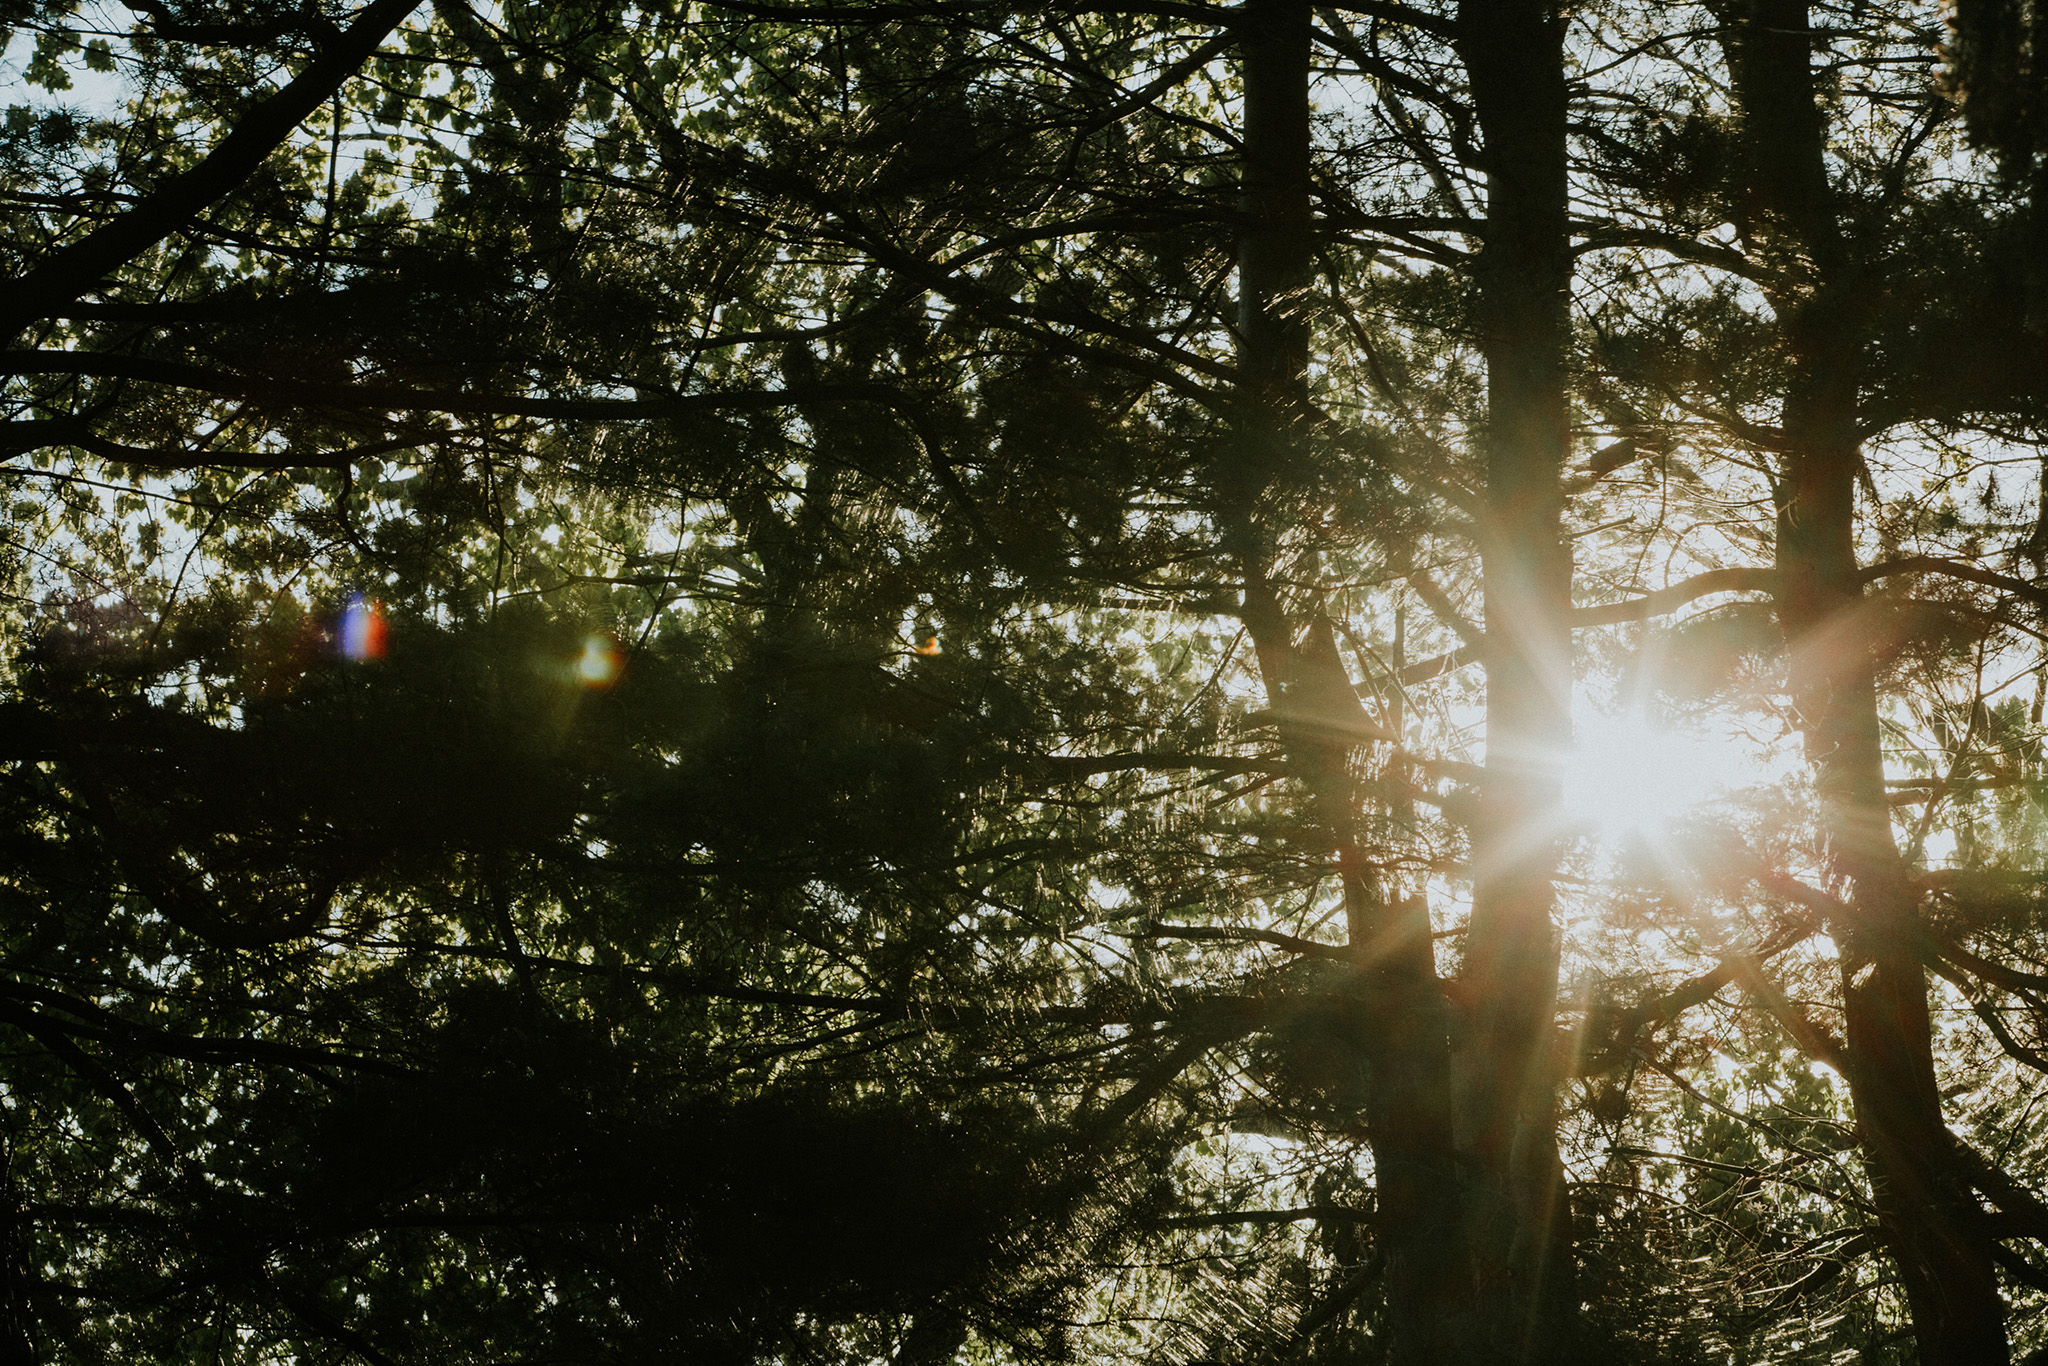 May 11: I see this light through the trees every night after work.